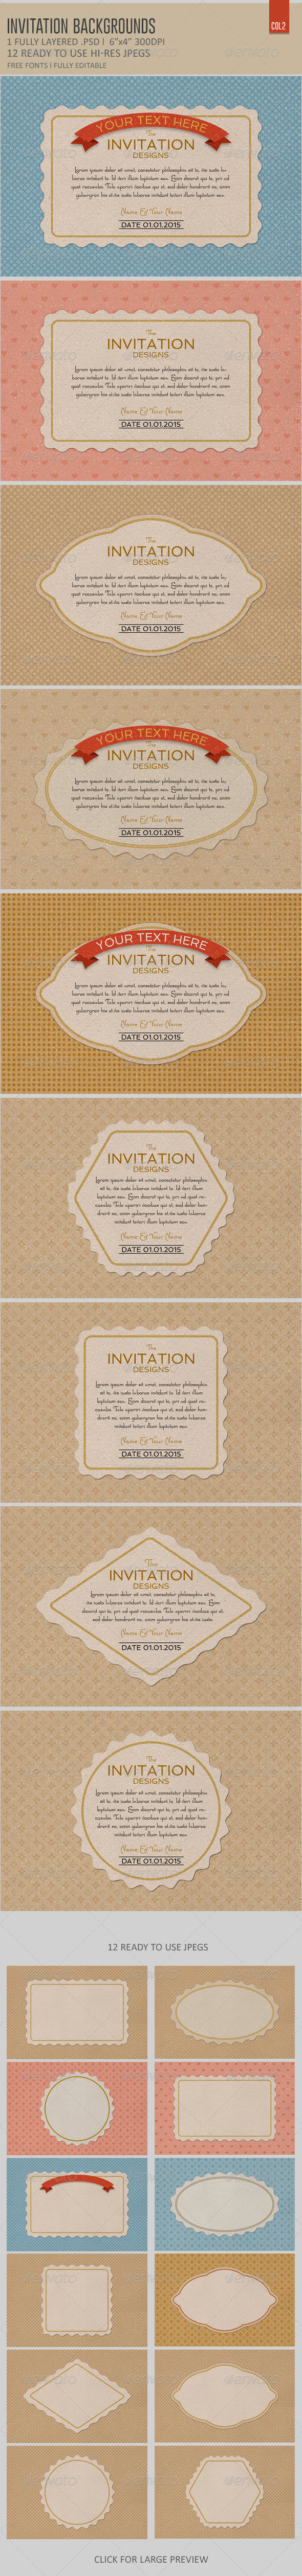 Invitation Card Backgrounds  Col2 - Backgrounds Graphics